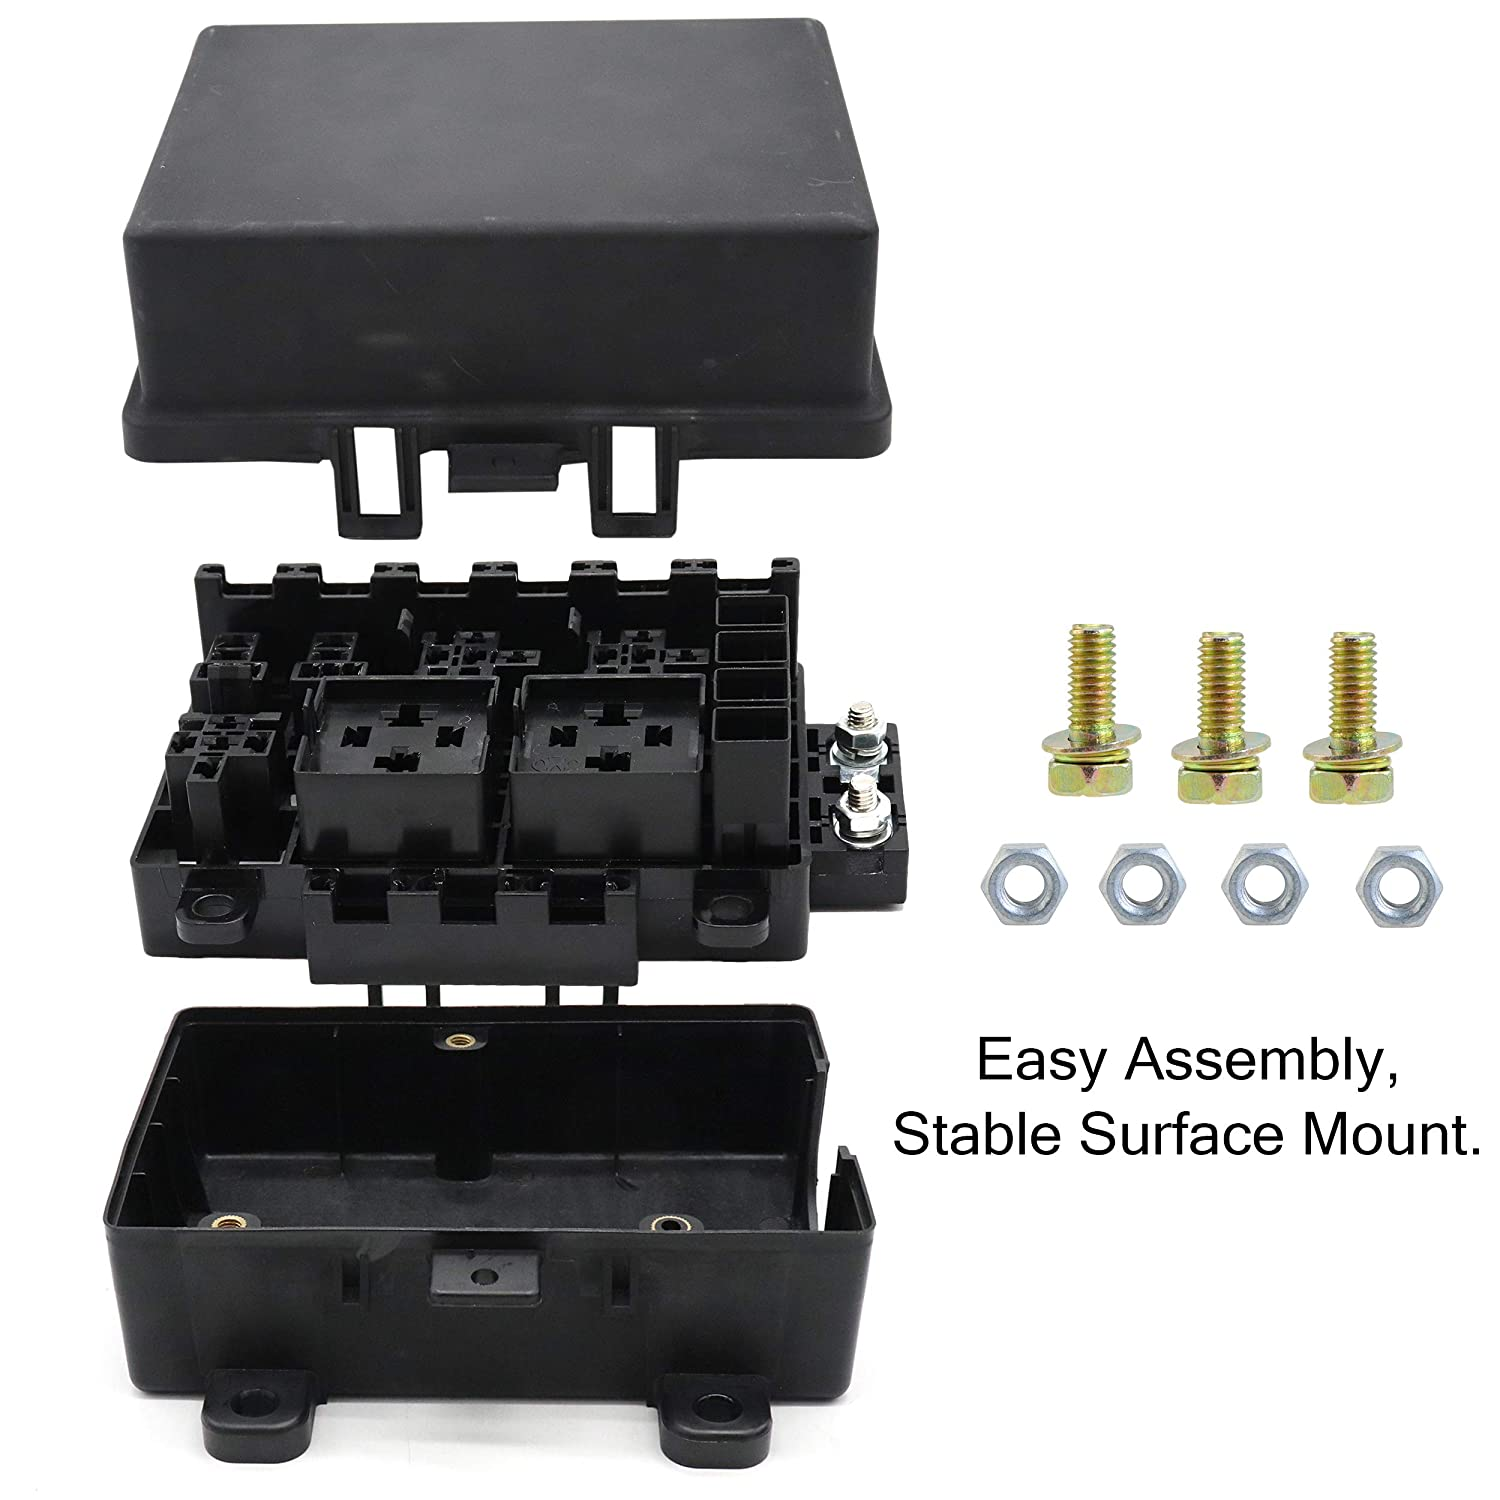 21 Slot Relay Fuse Box Ato Atc Holder With Car Integrated Battery Relays And Fusespade Terminals For Automotive Trailer Marine Use